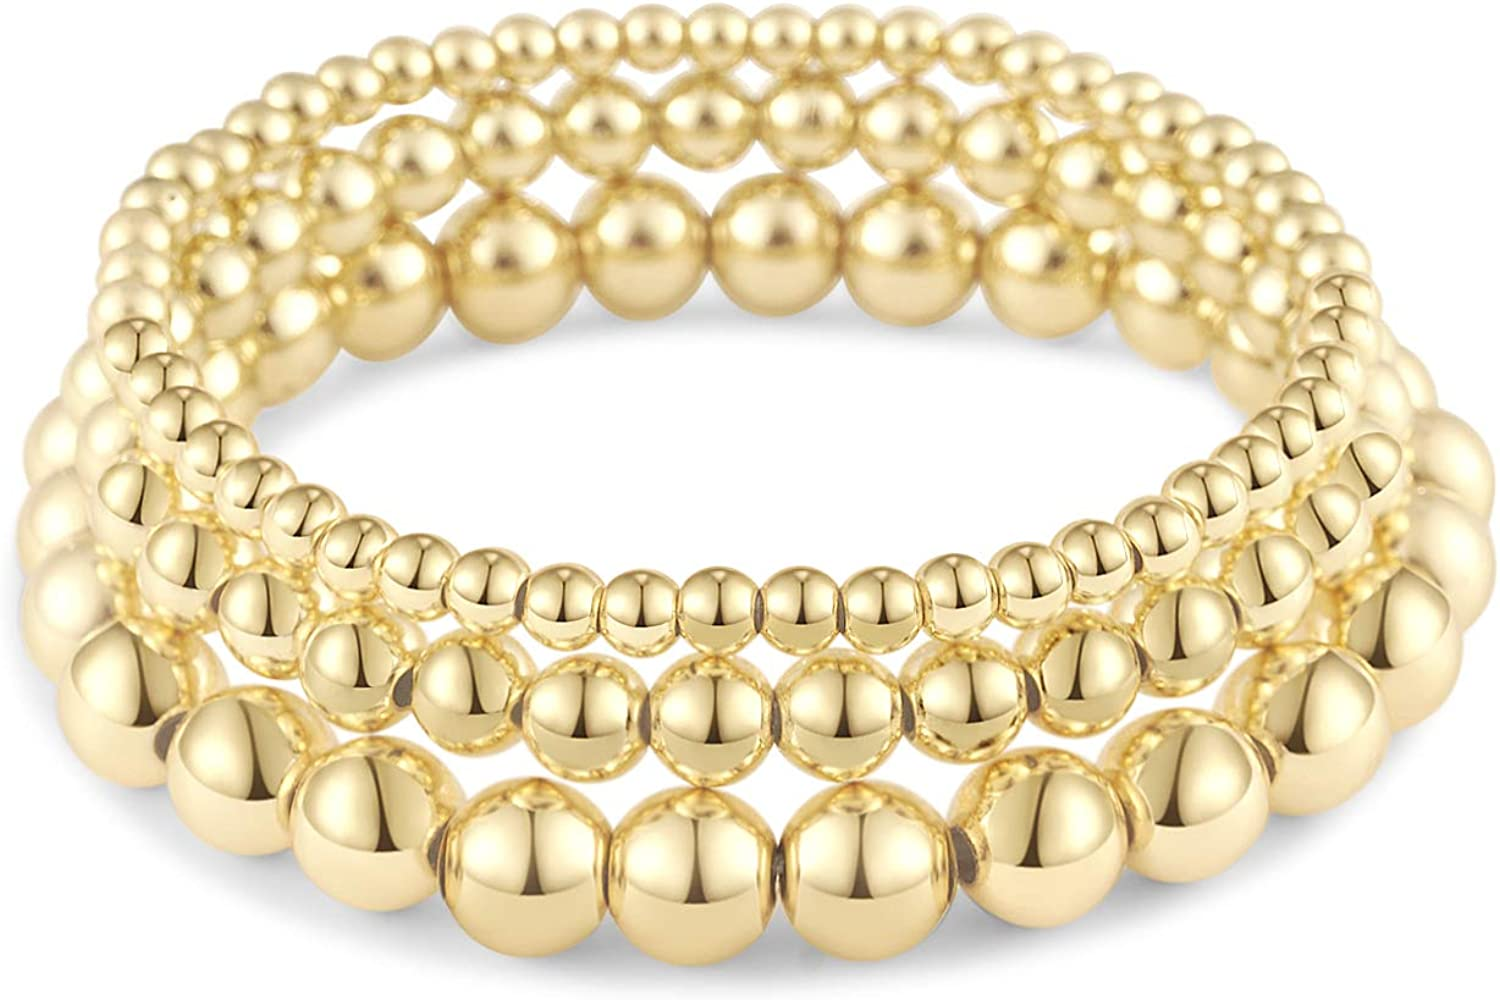 Beaded Bracelets for Women Stack Stretch Gold Silver Small Ball Beads Bracelets Dainty Paperclip Figaro Link Chain Bracelet Ankle for His and Her